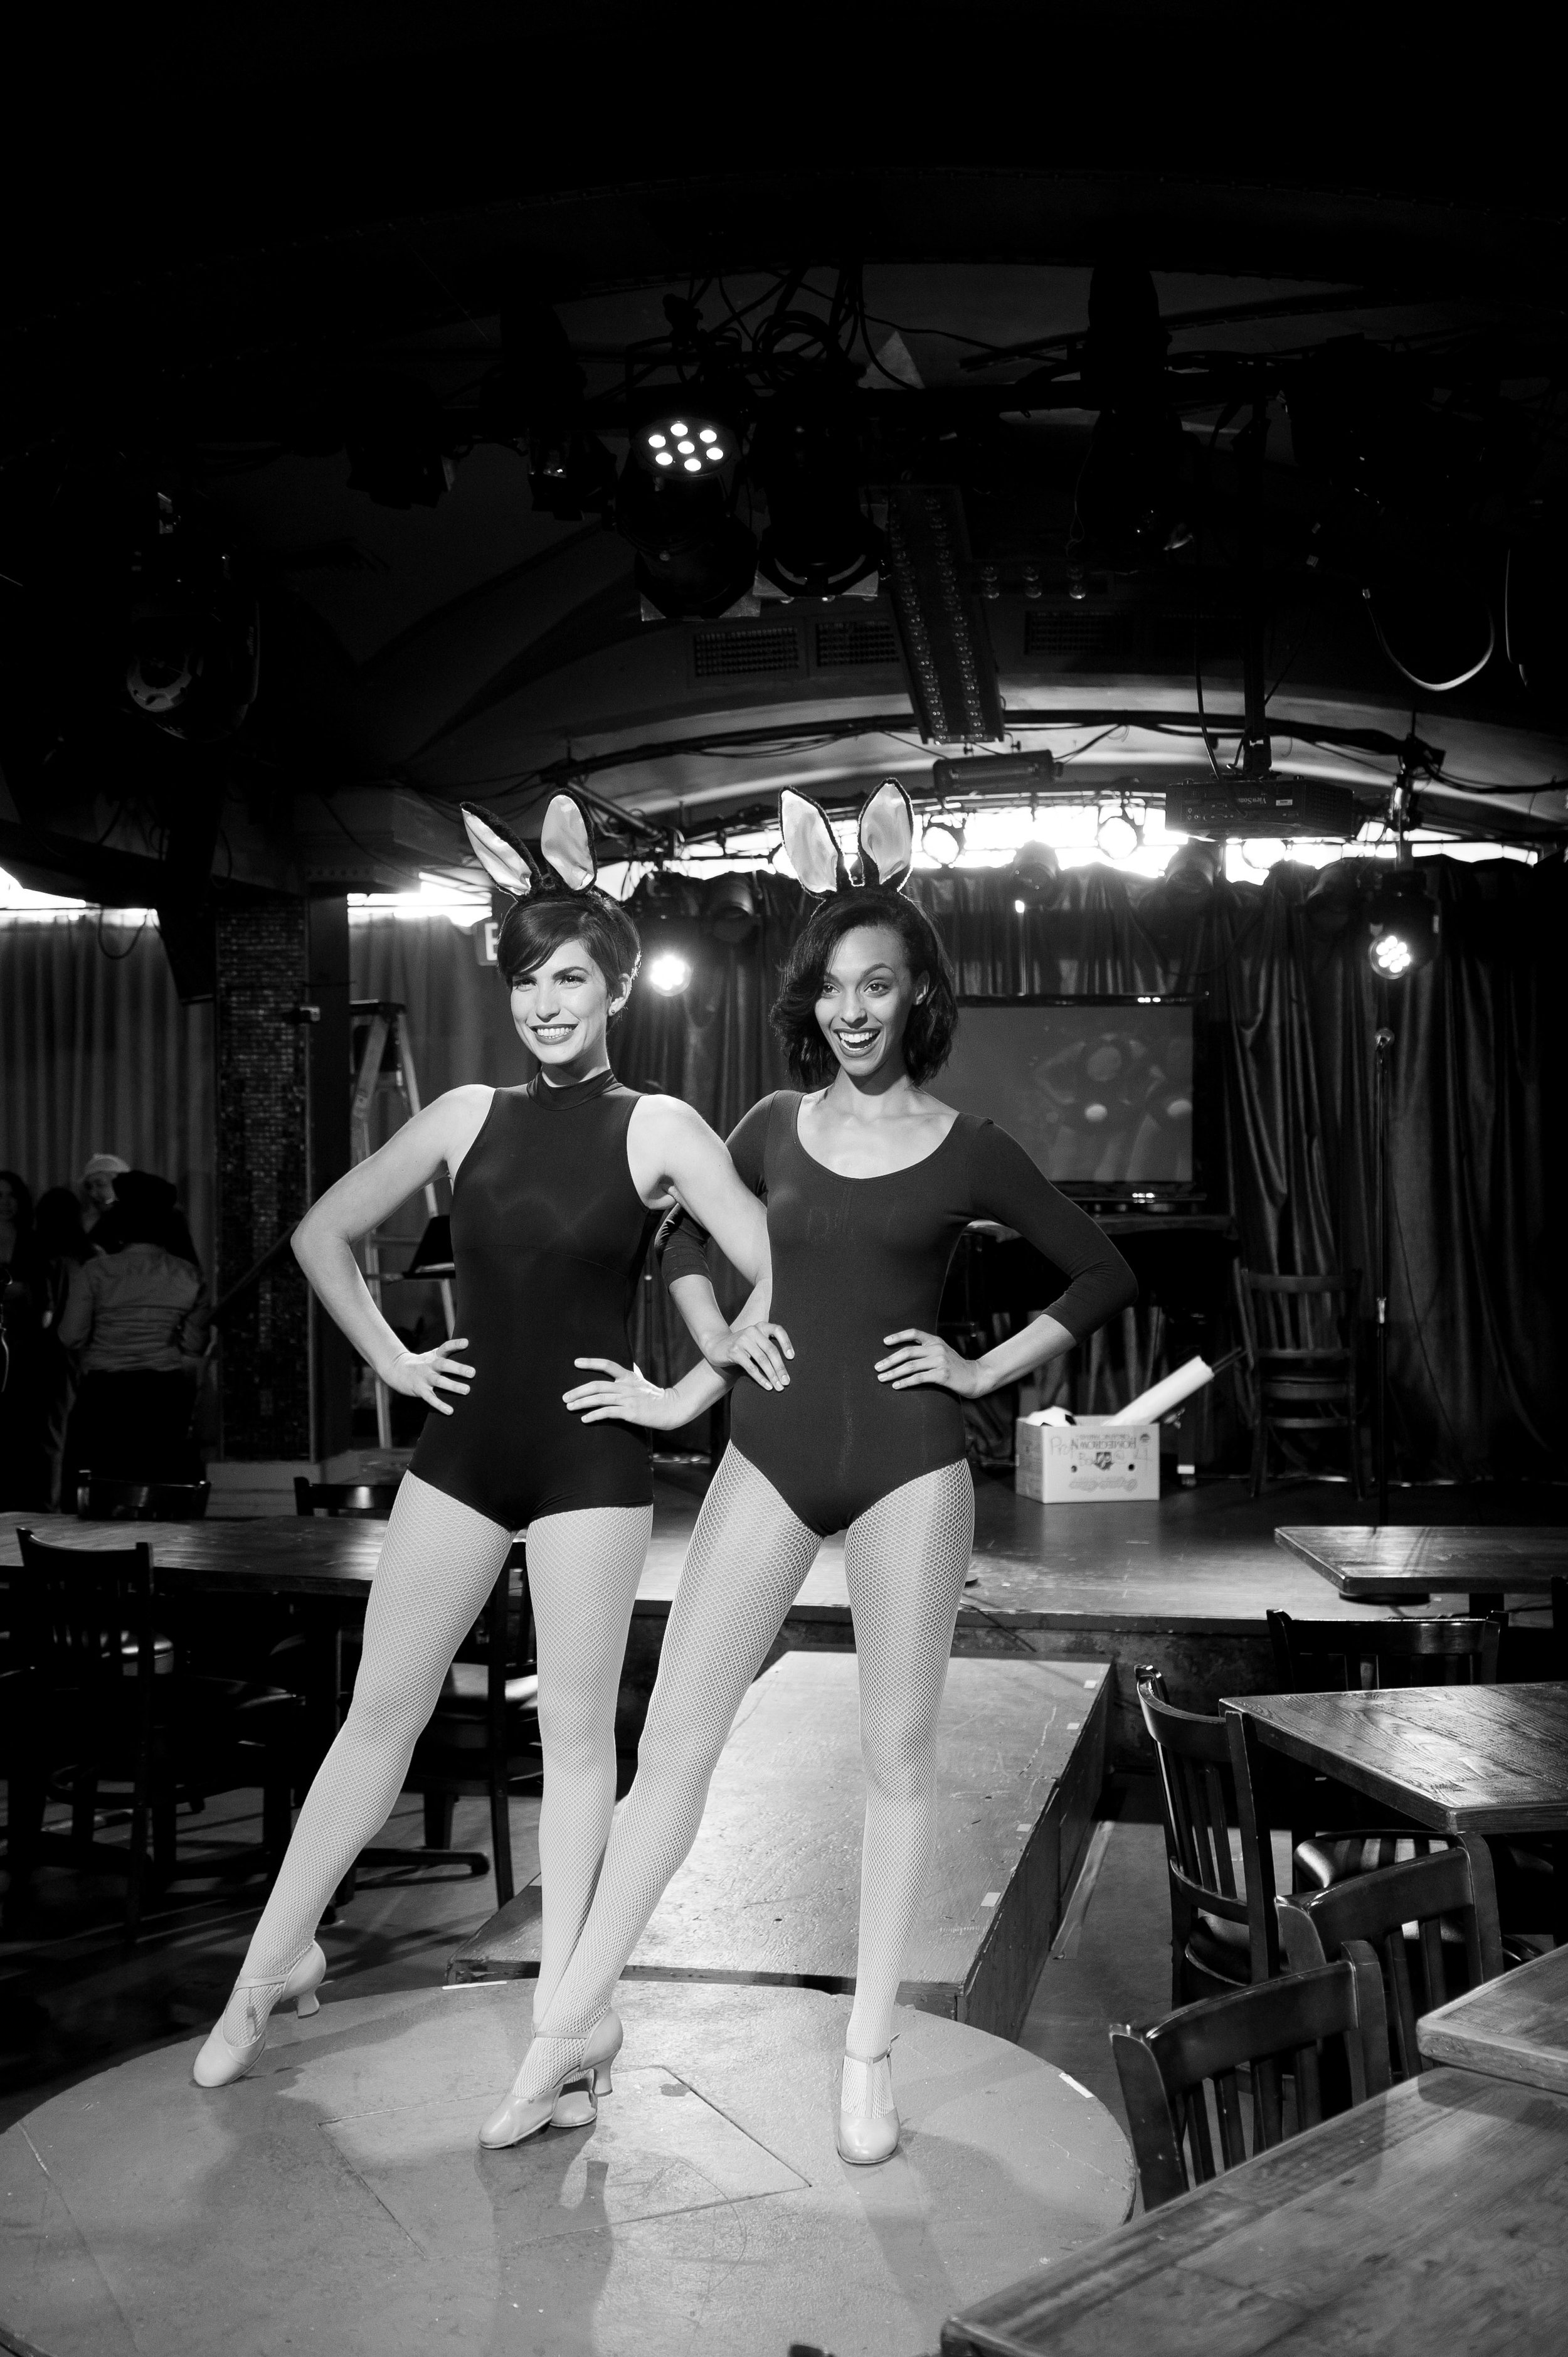 Gilli Messer & Caitlainne Gurreri as Two Women With Bunny Ears (2016)